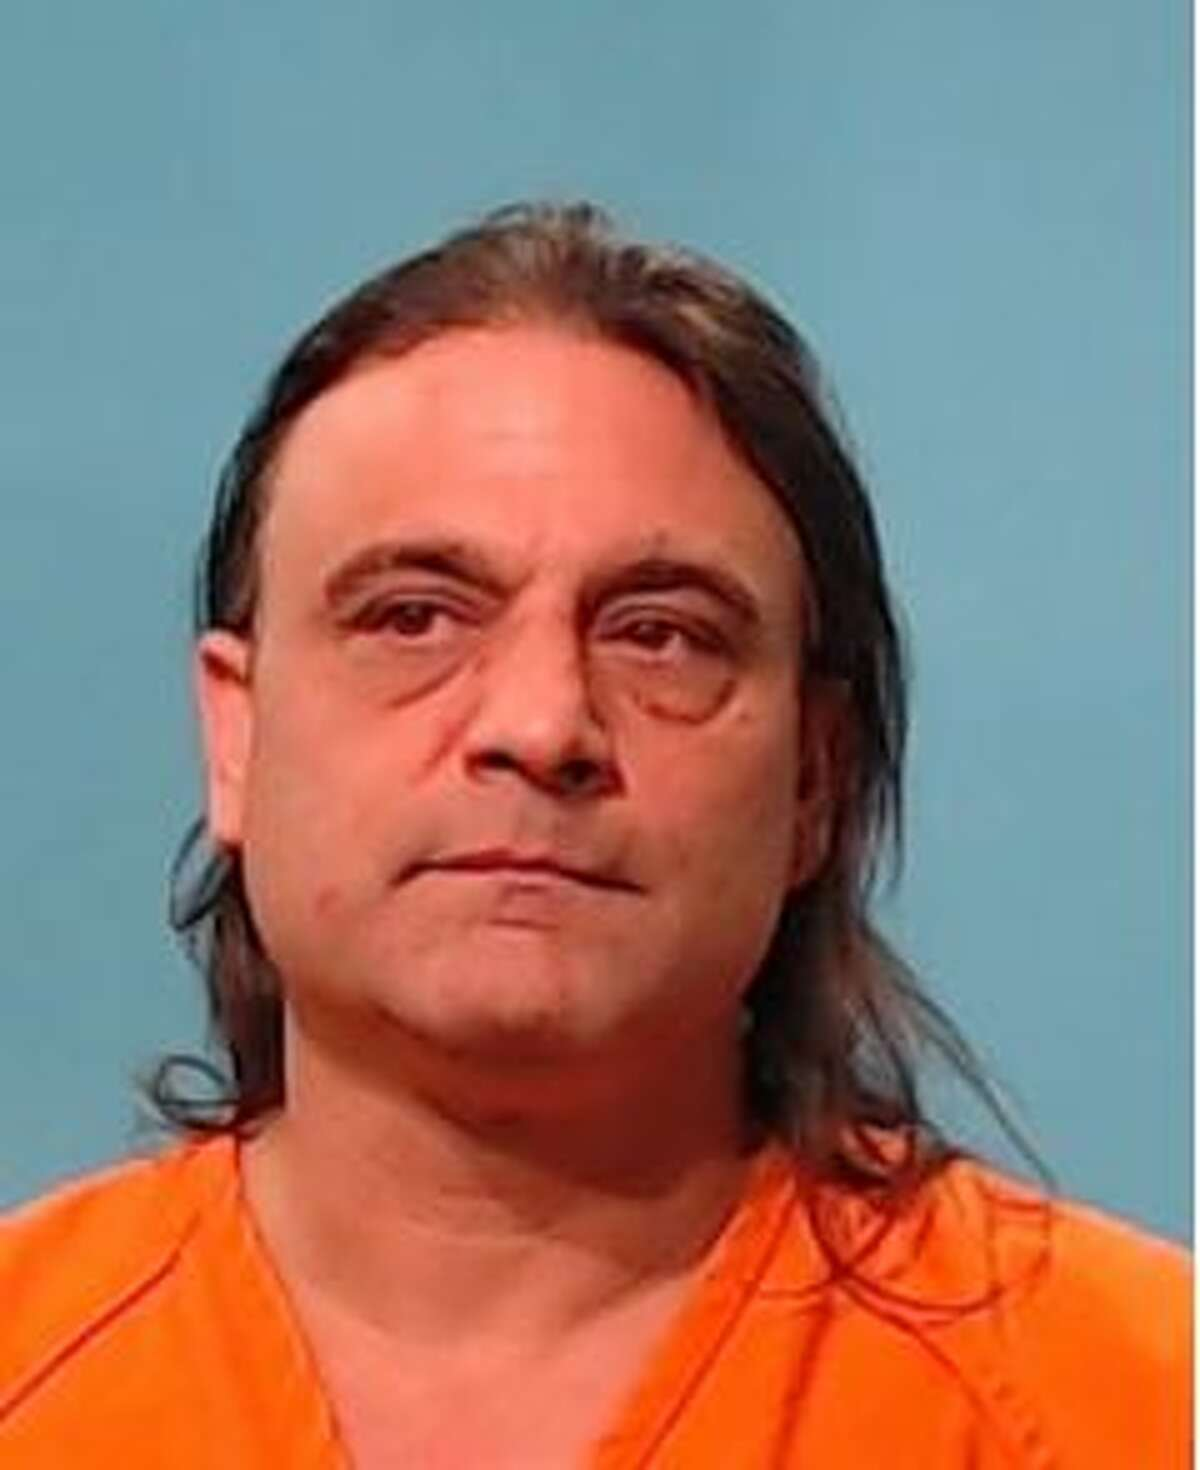 Anthony Baxter was charged with murder in February.